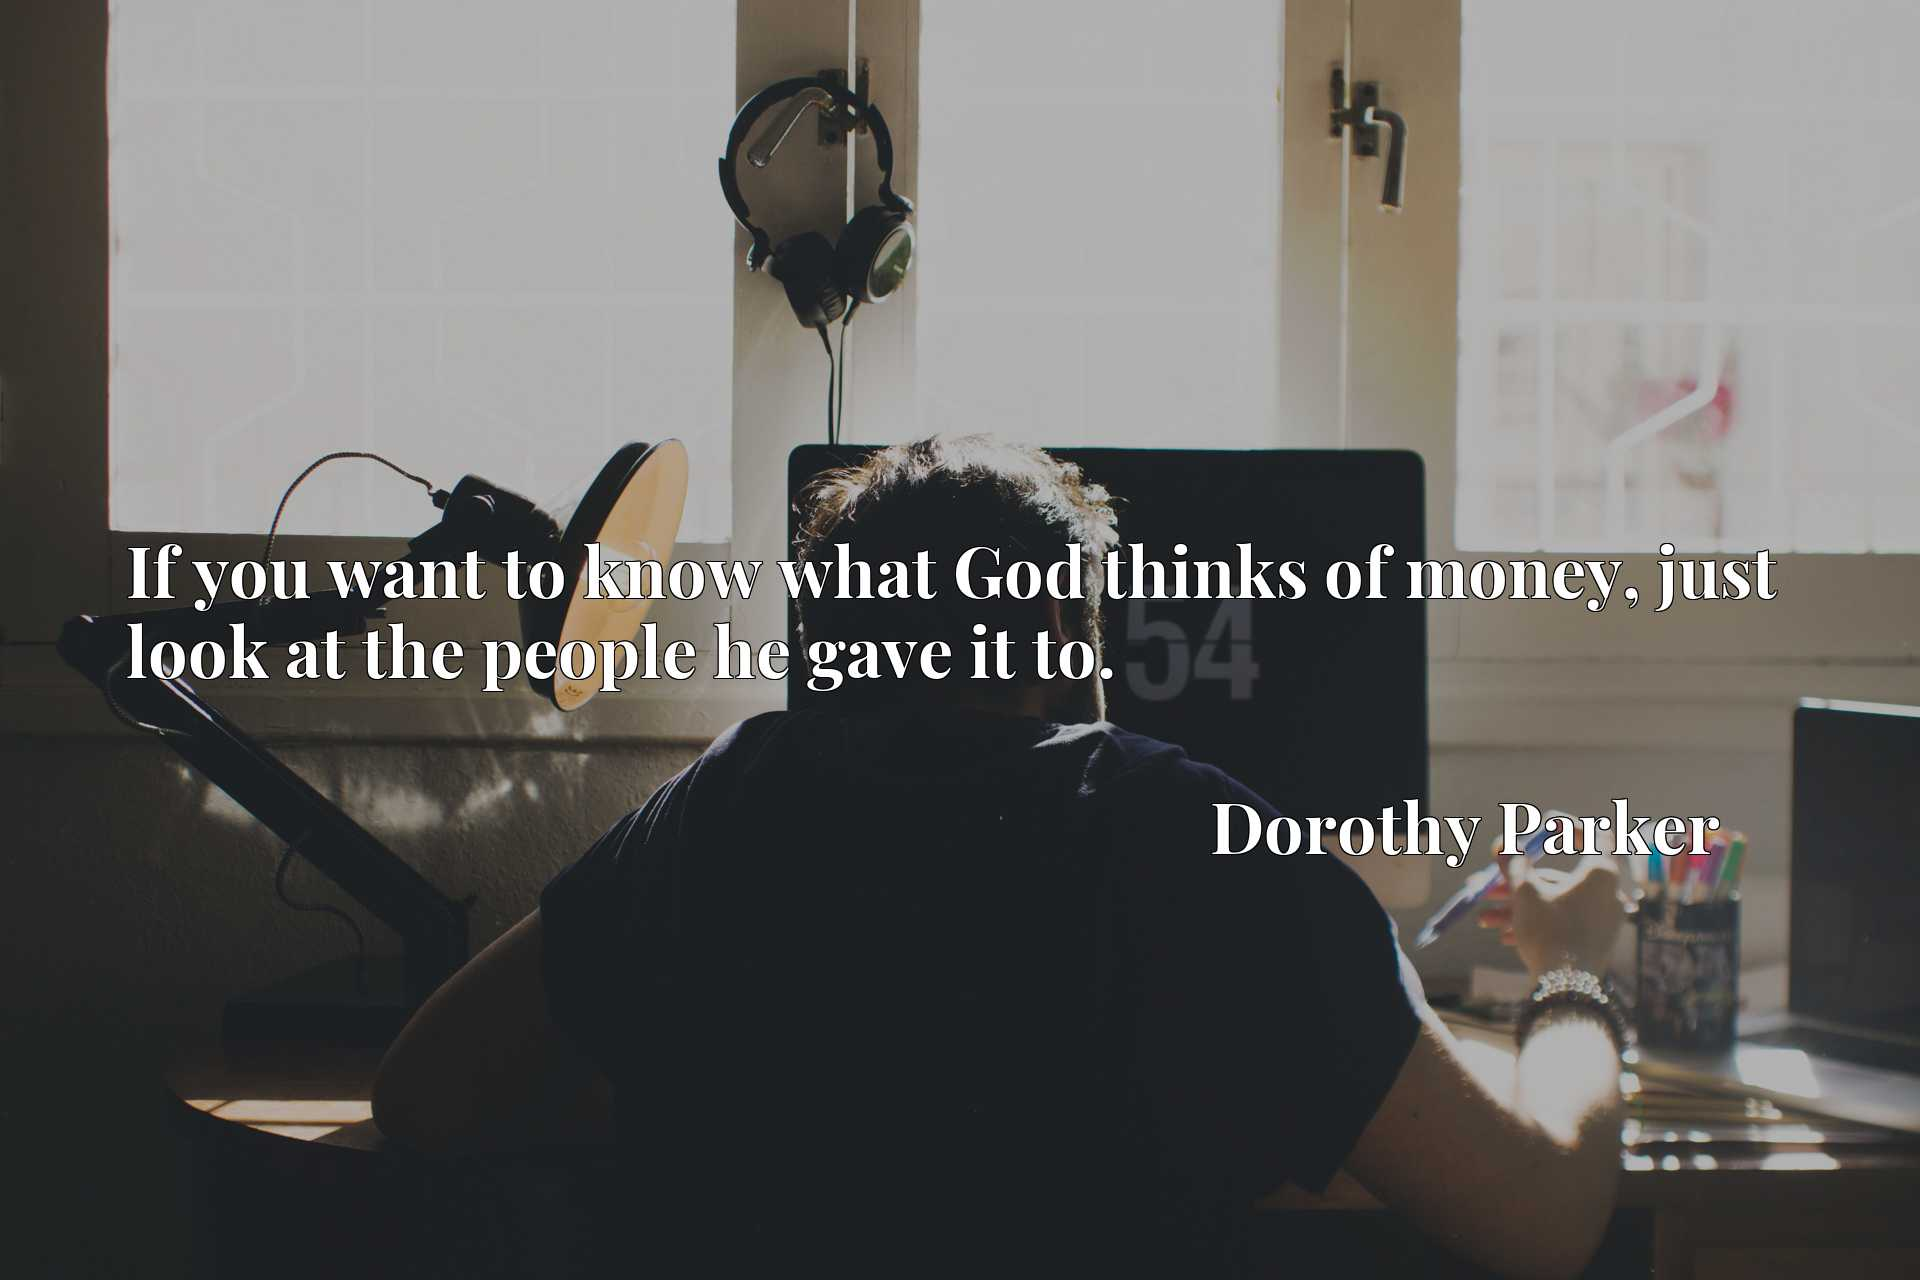 Quote Picture :If you want to know what God thinks of money, just look at the people he gave it to.